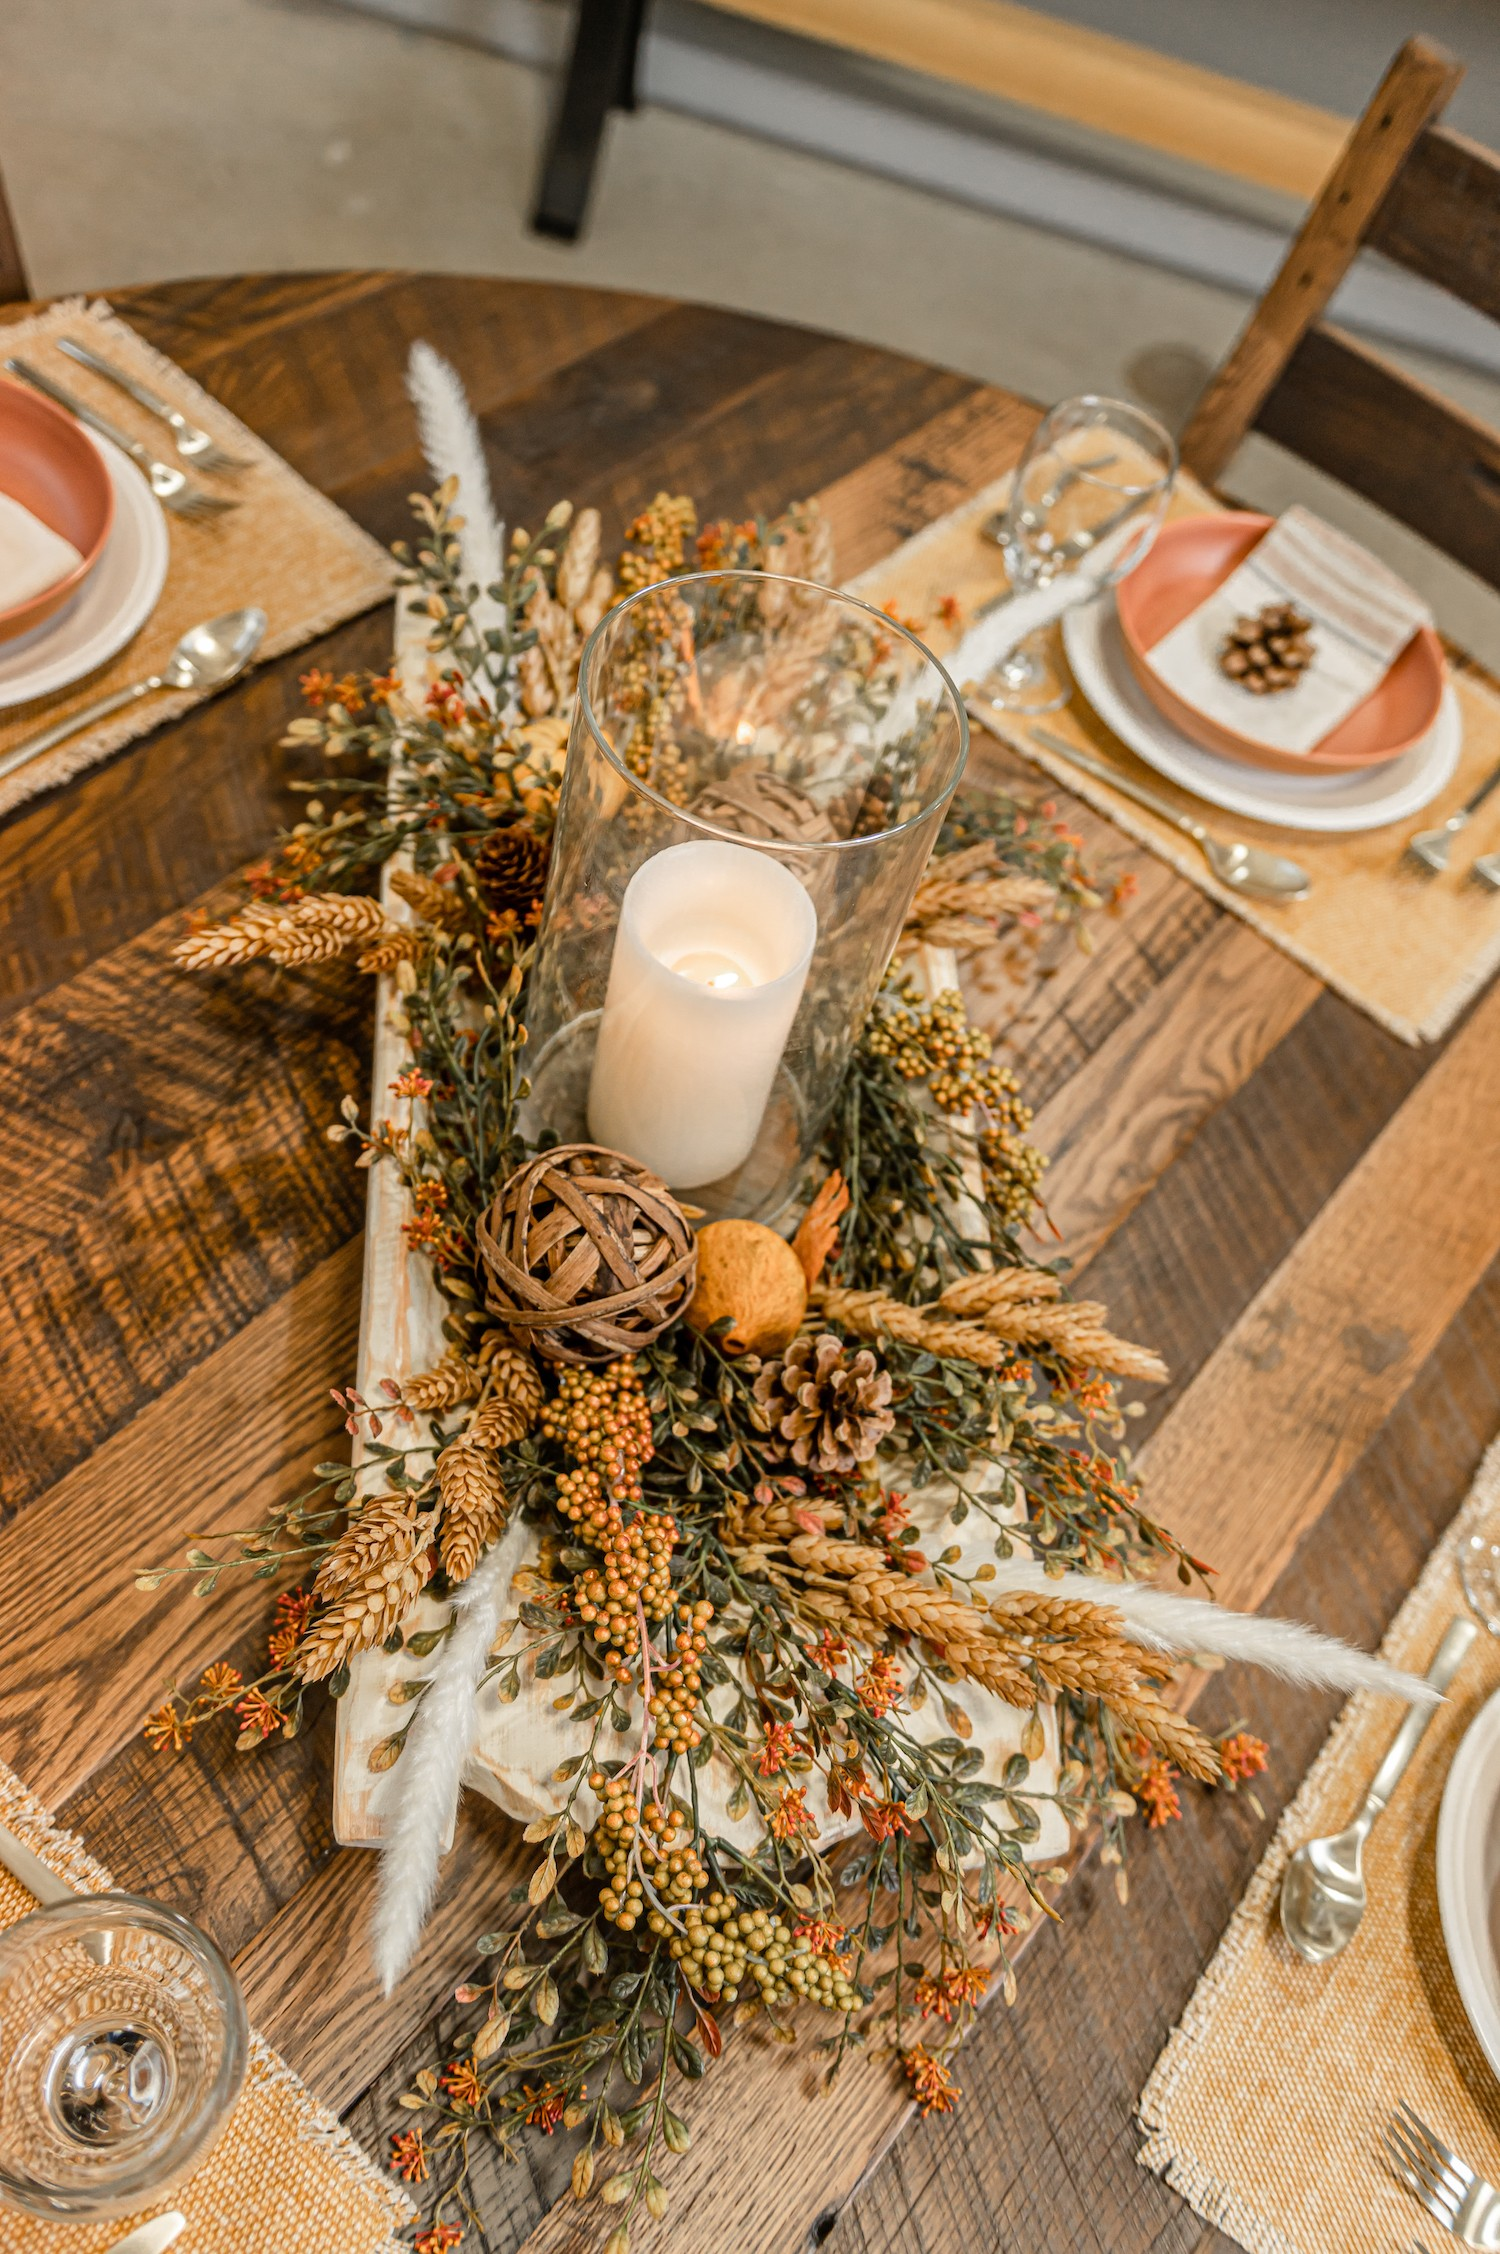 fall centerpiece inspiration luminaire style candle within a glass huricane